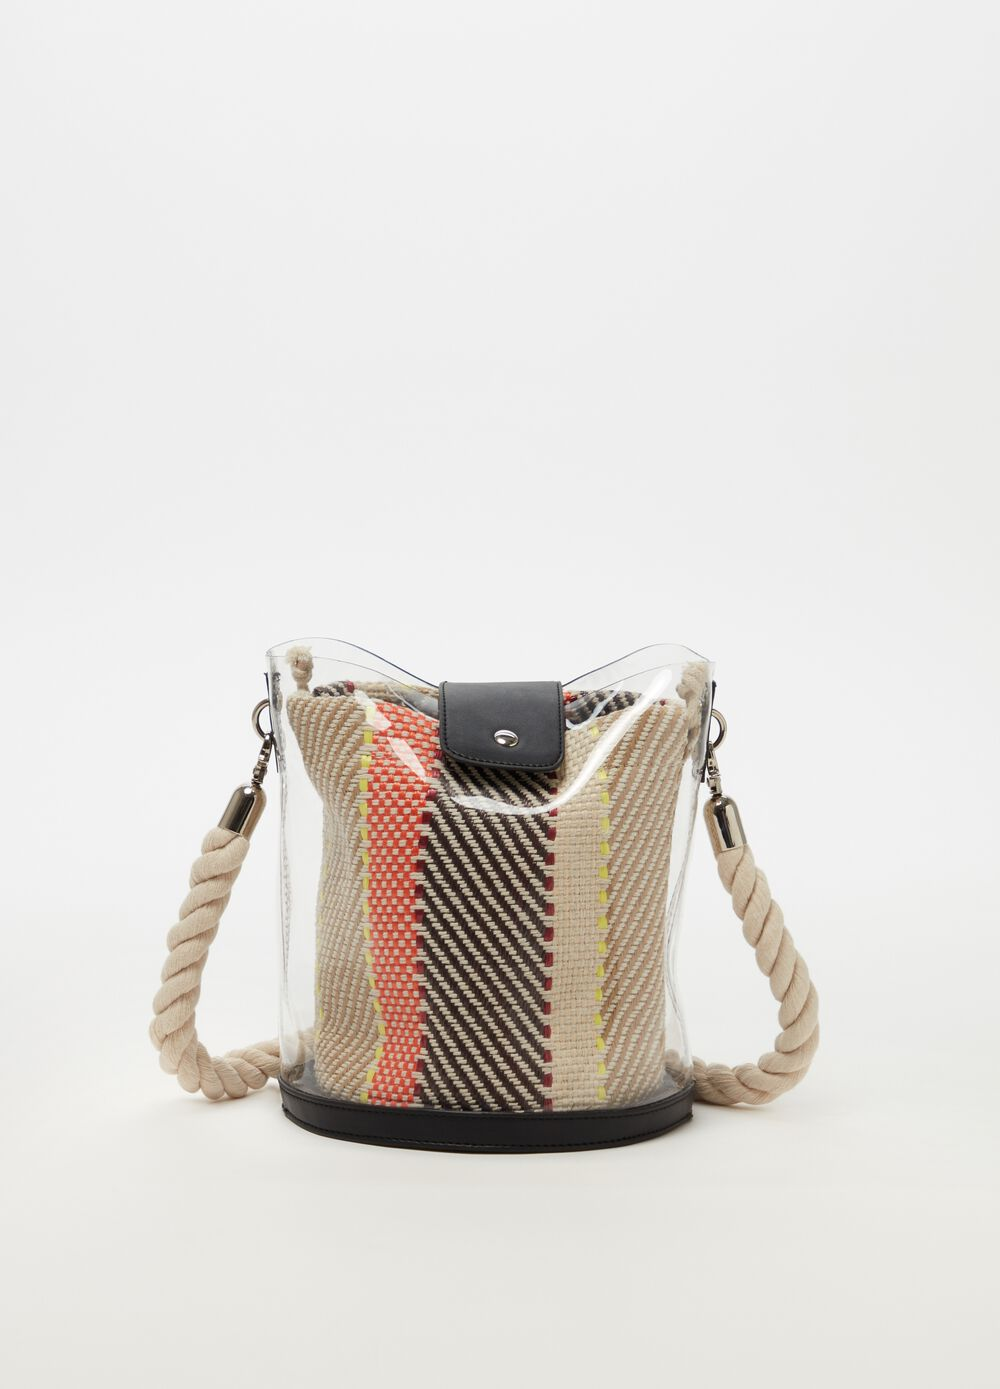 Tote bag with rope-effect handle